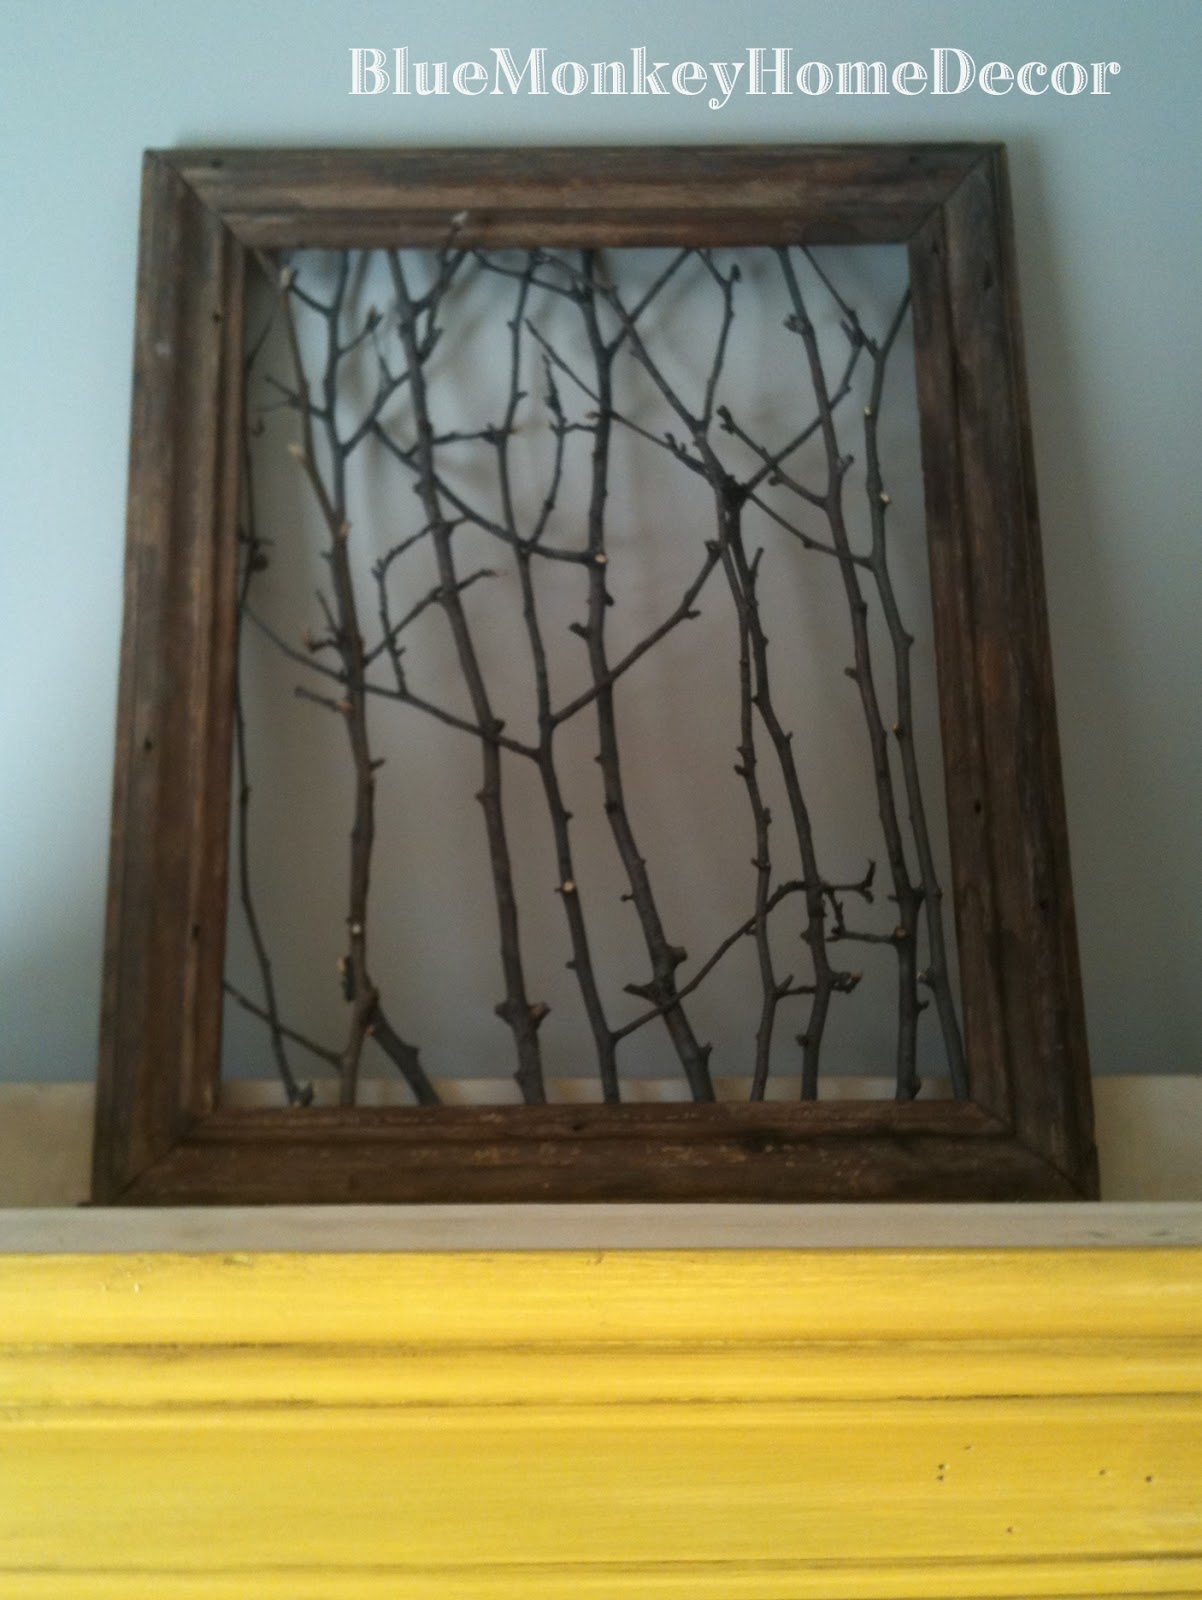 Blue monkey home decor window and frame projects for Old picture frame projects